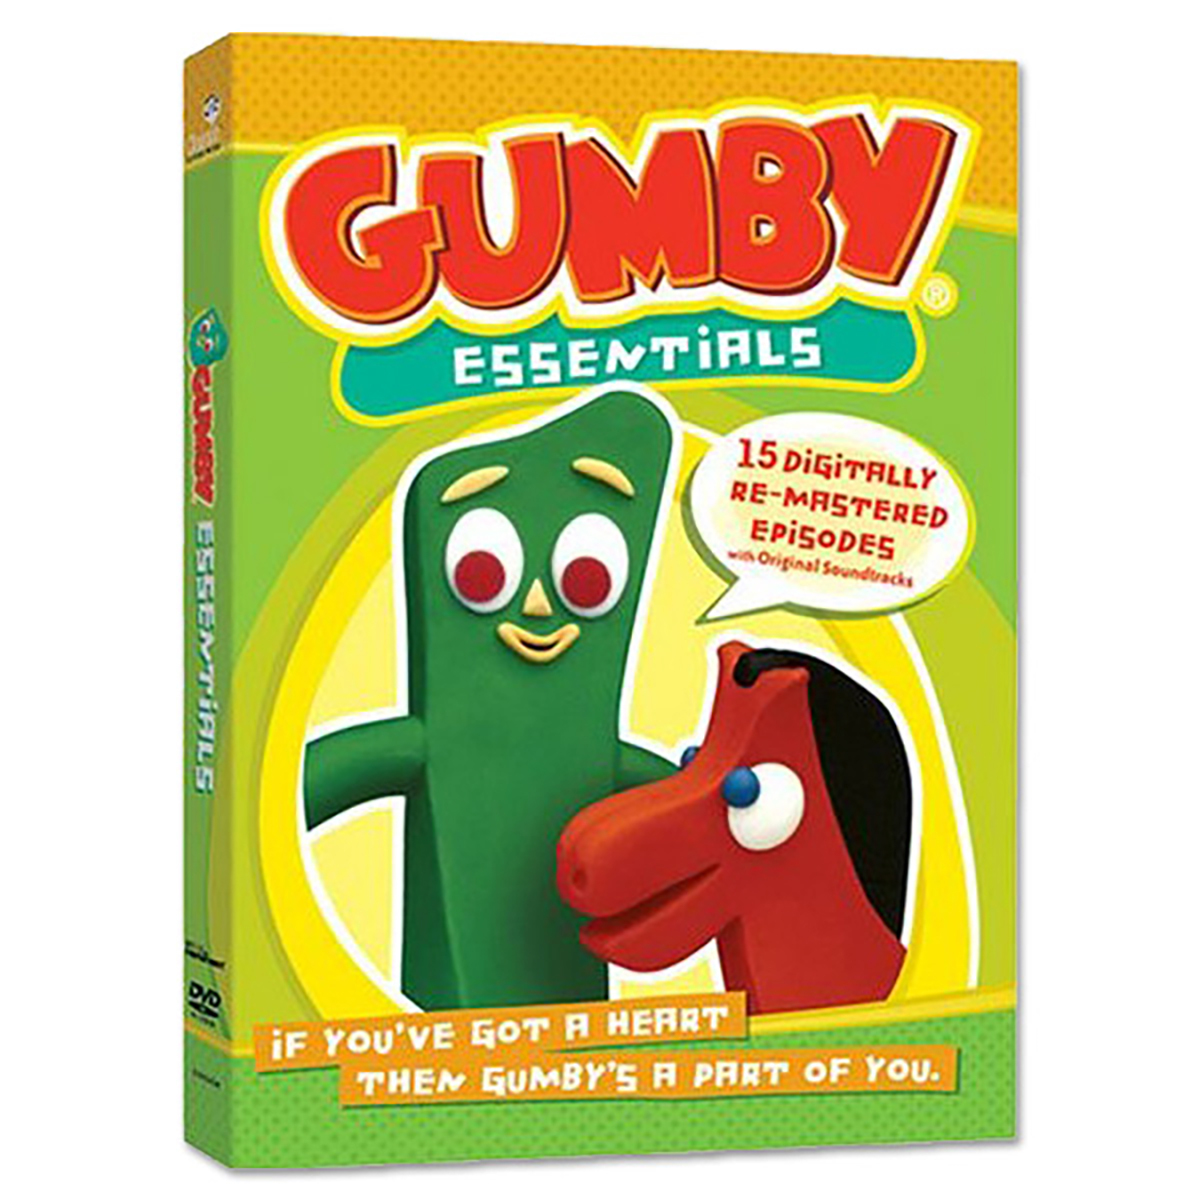 Gumby Essentials DVD